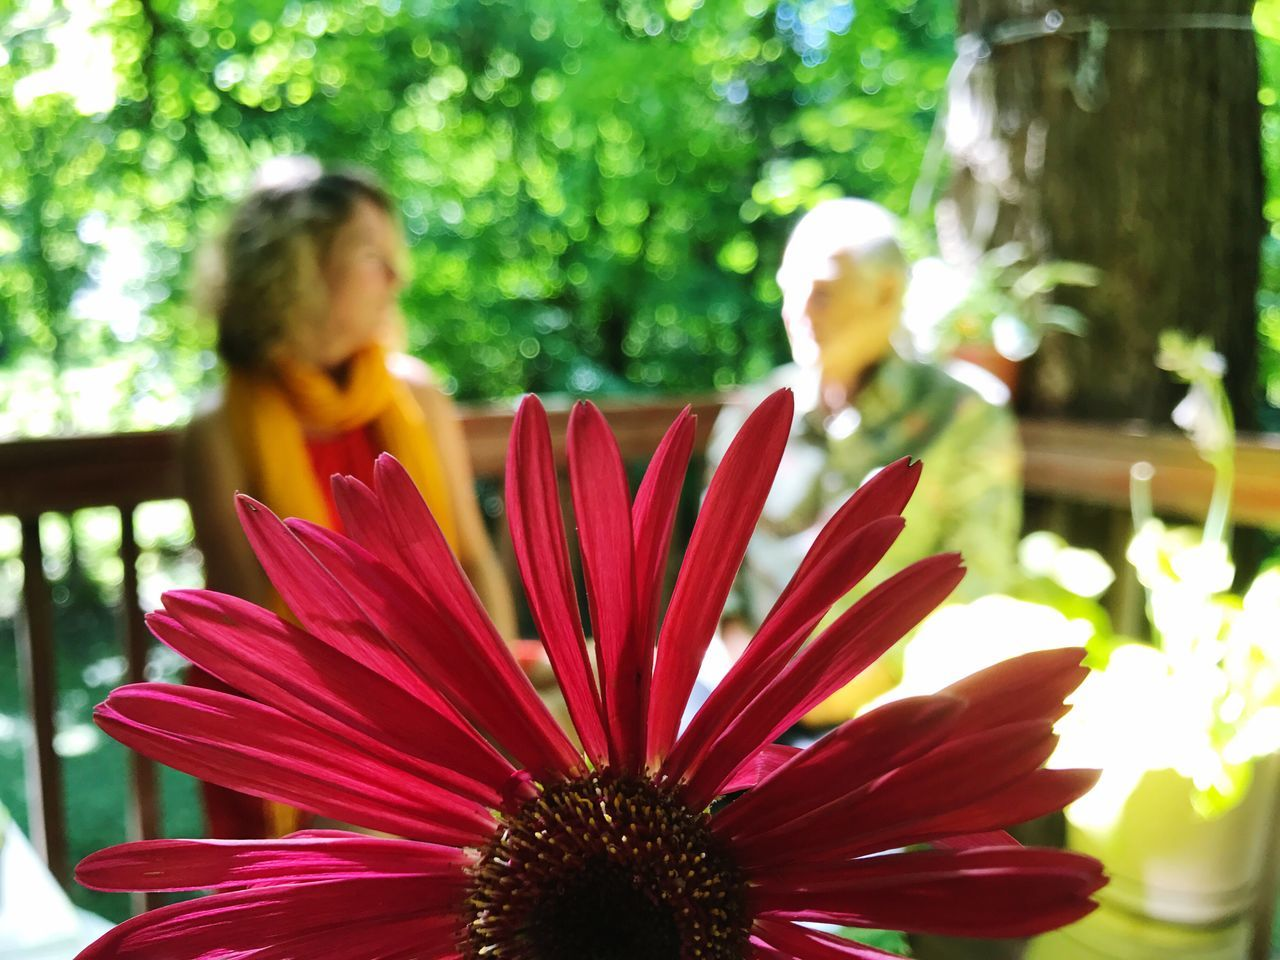 Flower Nature Fragility Growth Petal Beauty In Nature Plant Outdoors Day Focus On Foreground Freshness Flower Head Close-up Blooming Real People Dialogue Dialogue Of Father And Daughter